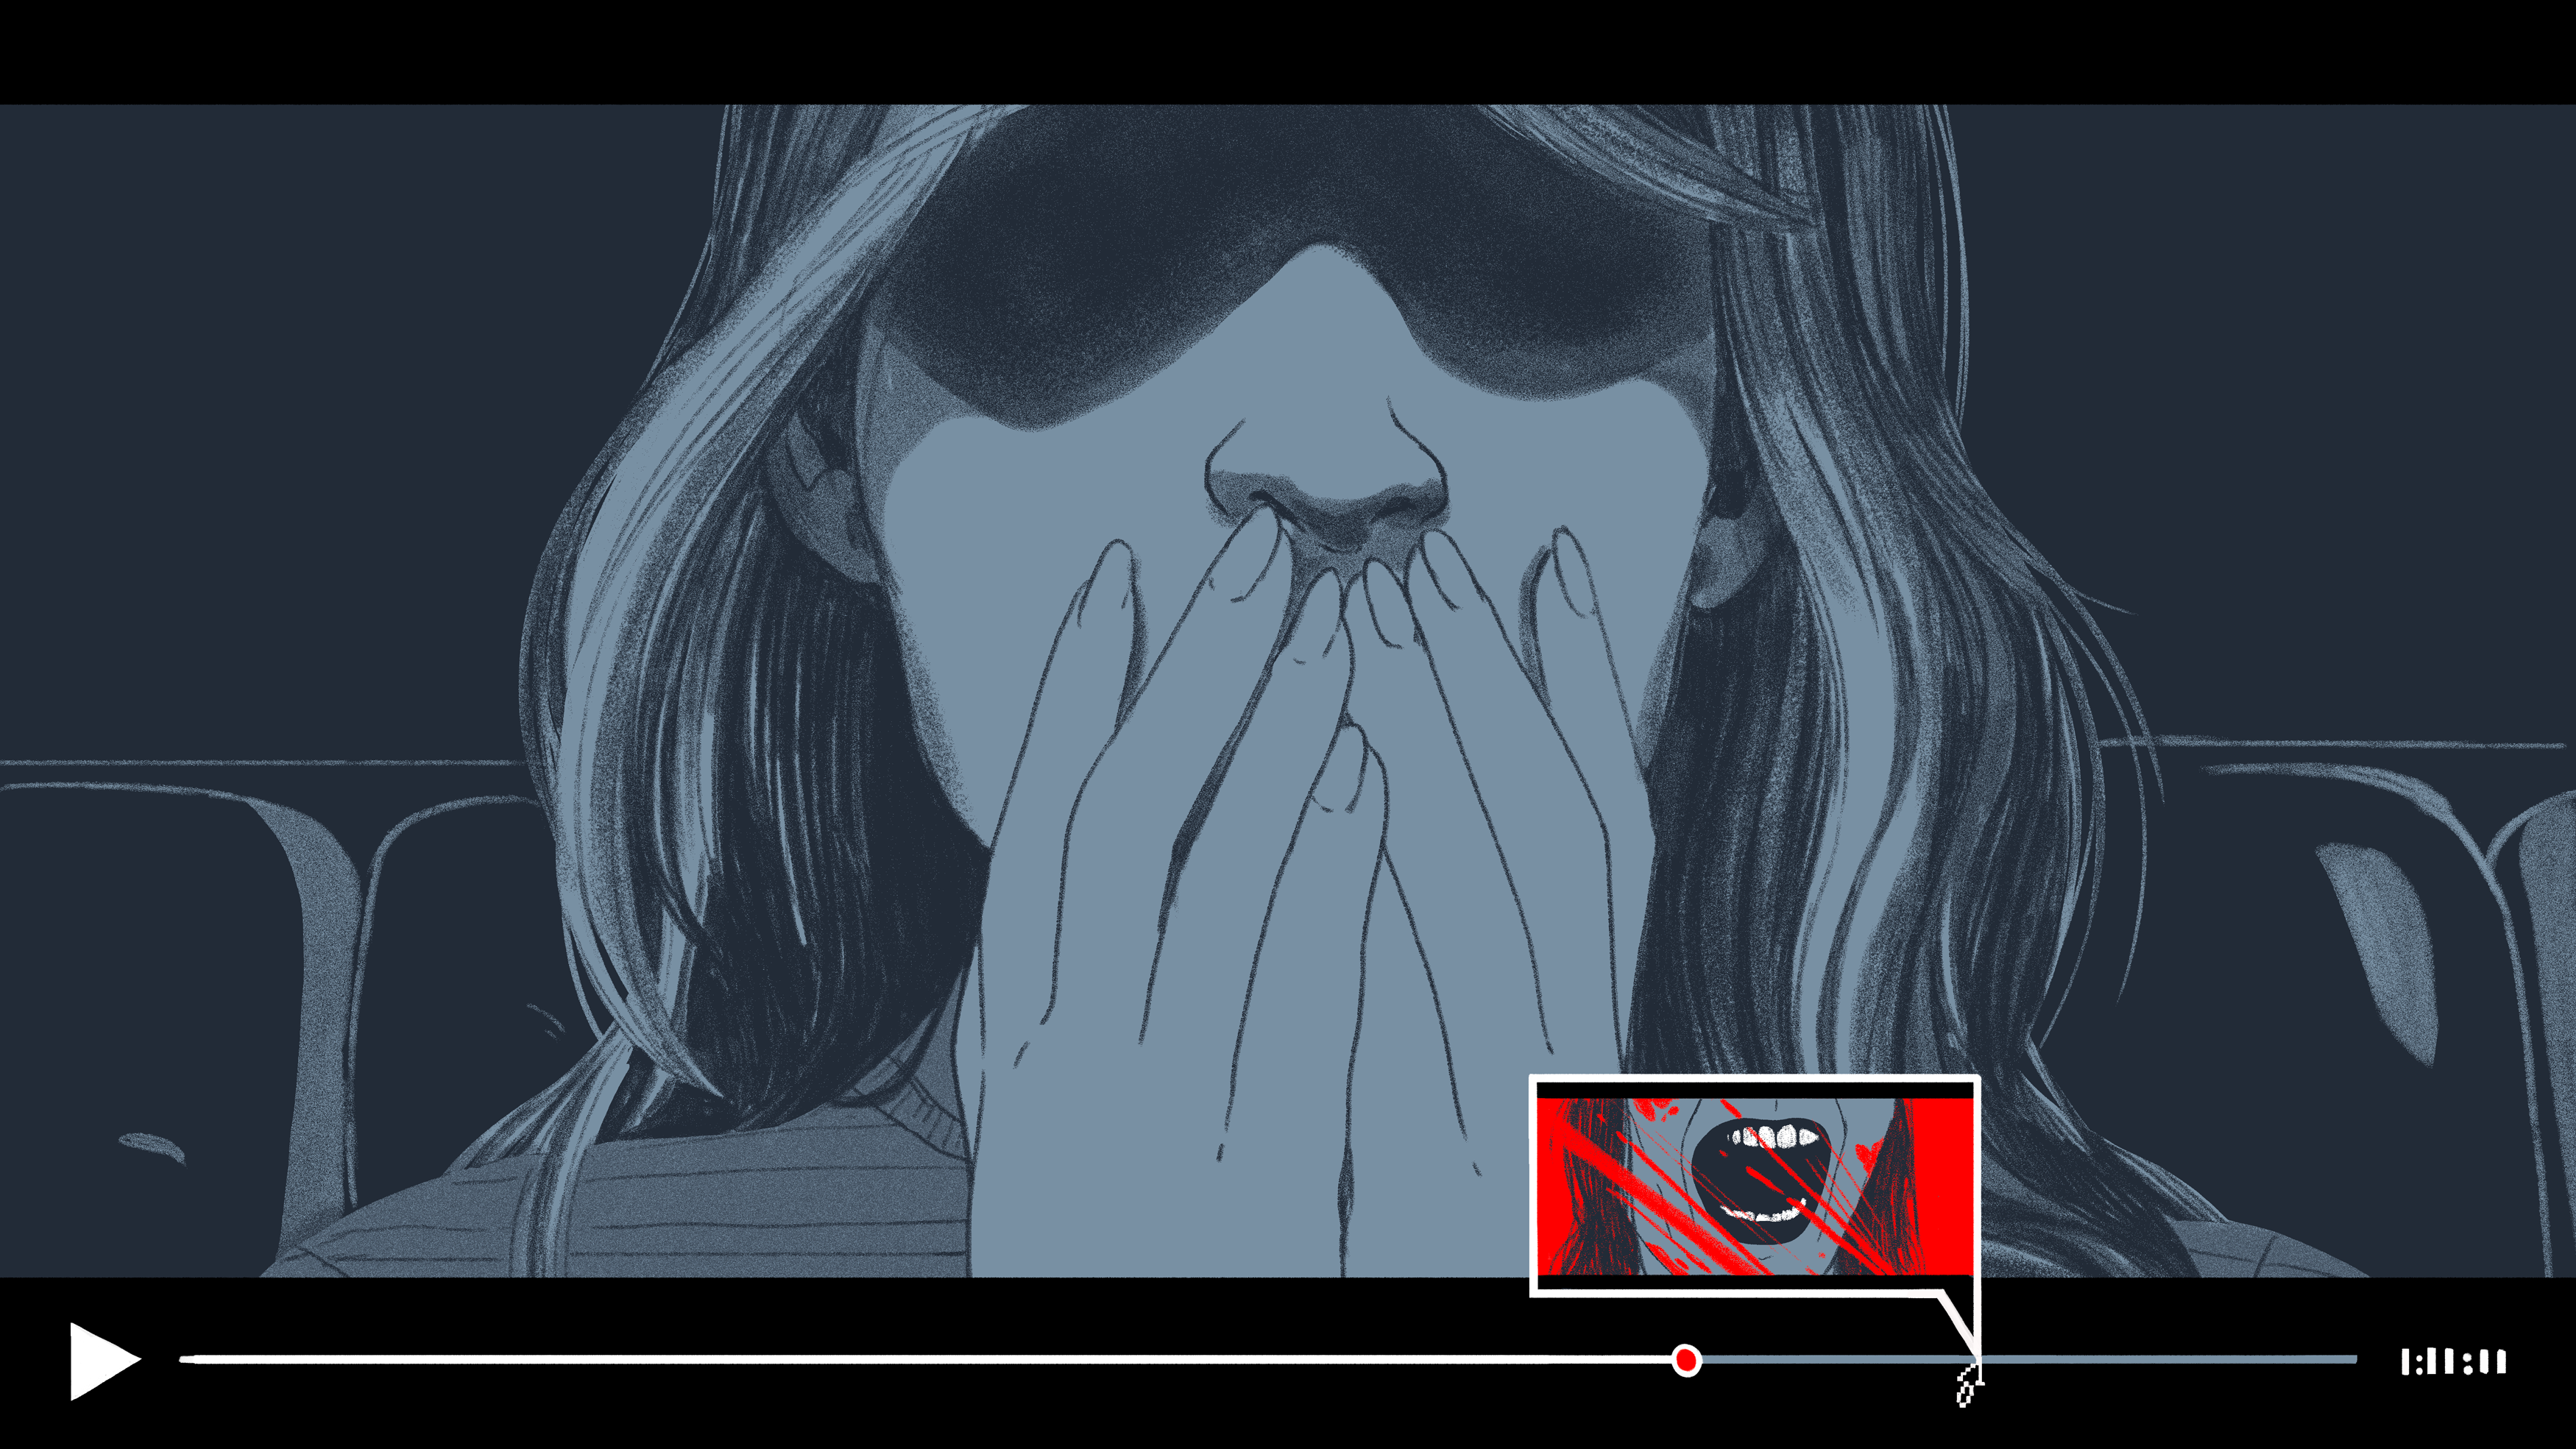 My Trick For Watching Scary Movies Even Though I'm A Total Coward